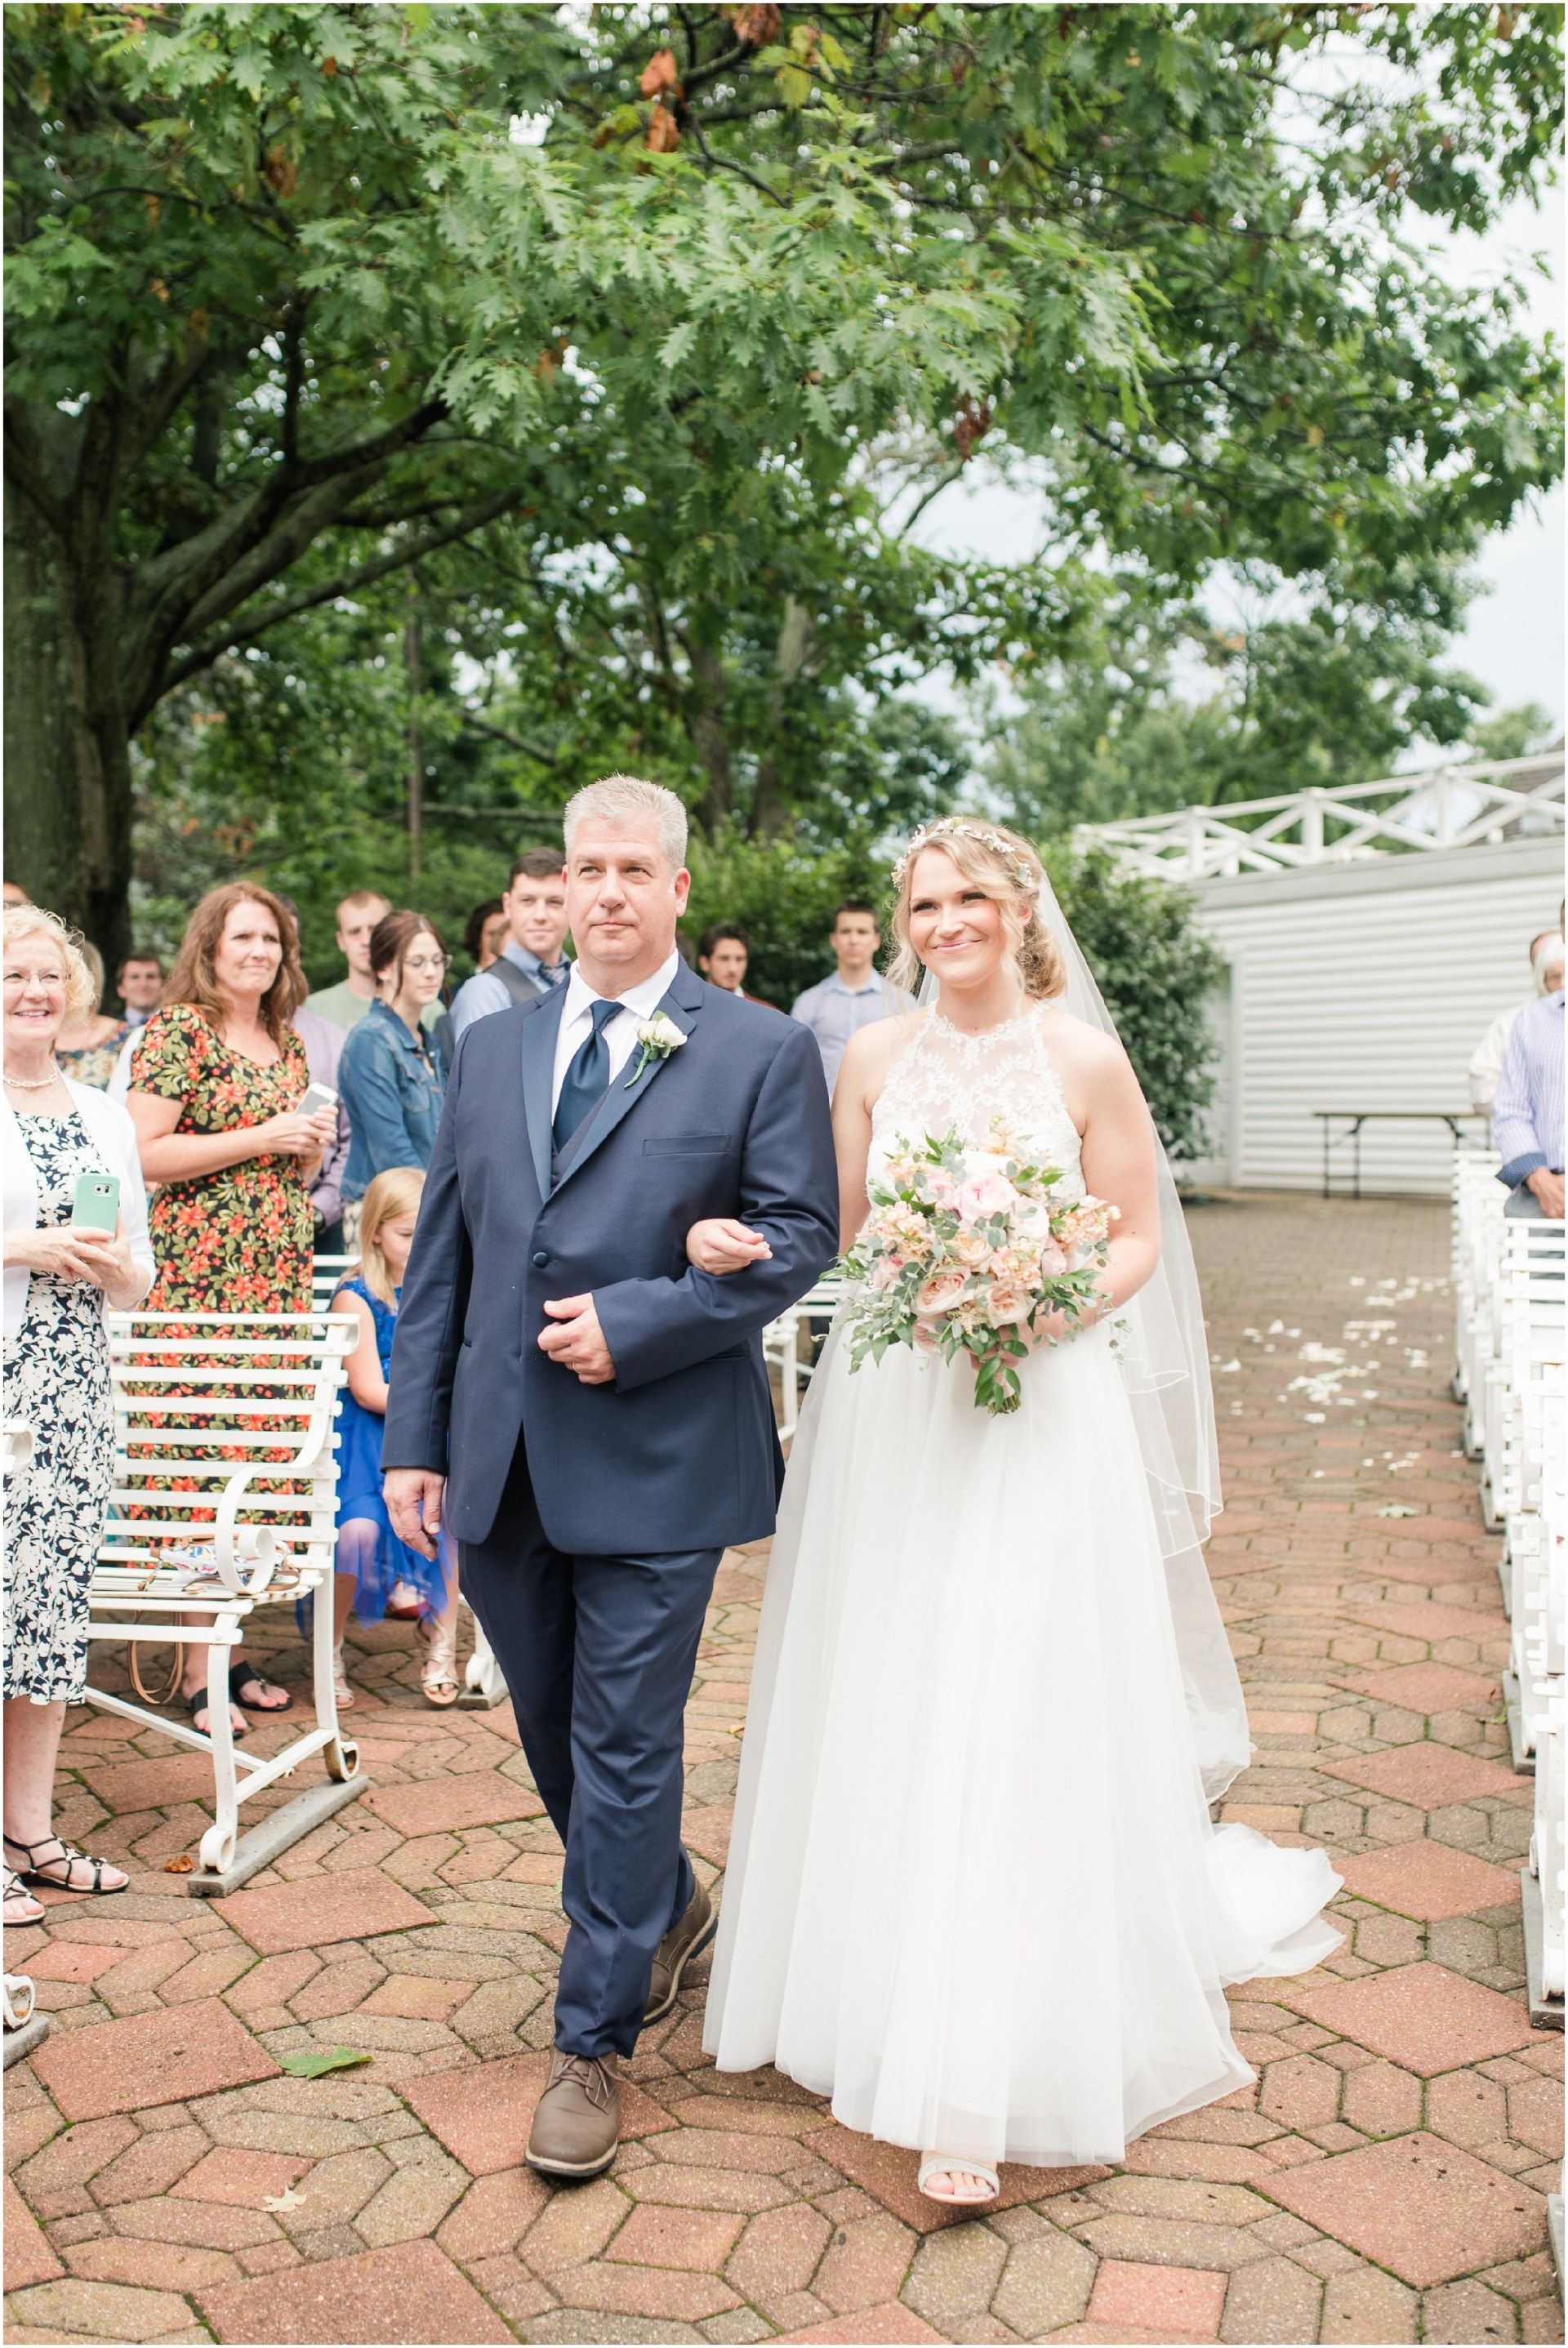 Bride Walking Down The Aisle On Her Wedding Day At An Outdoor Summer Ceremony The Flowerman Navy Suit Lace Two Piece Wedding Gown Brid Farm Wedding Wedding Bridal Formal